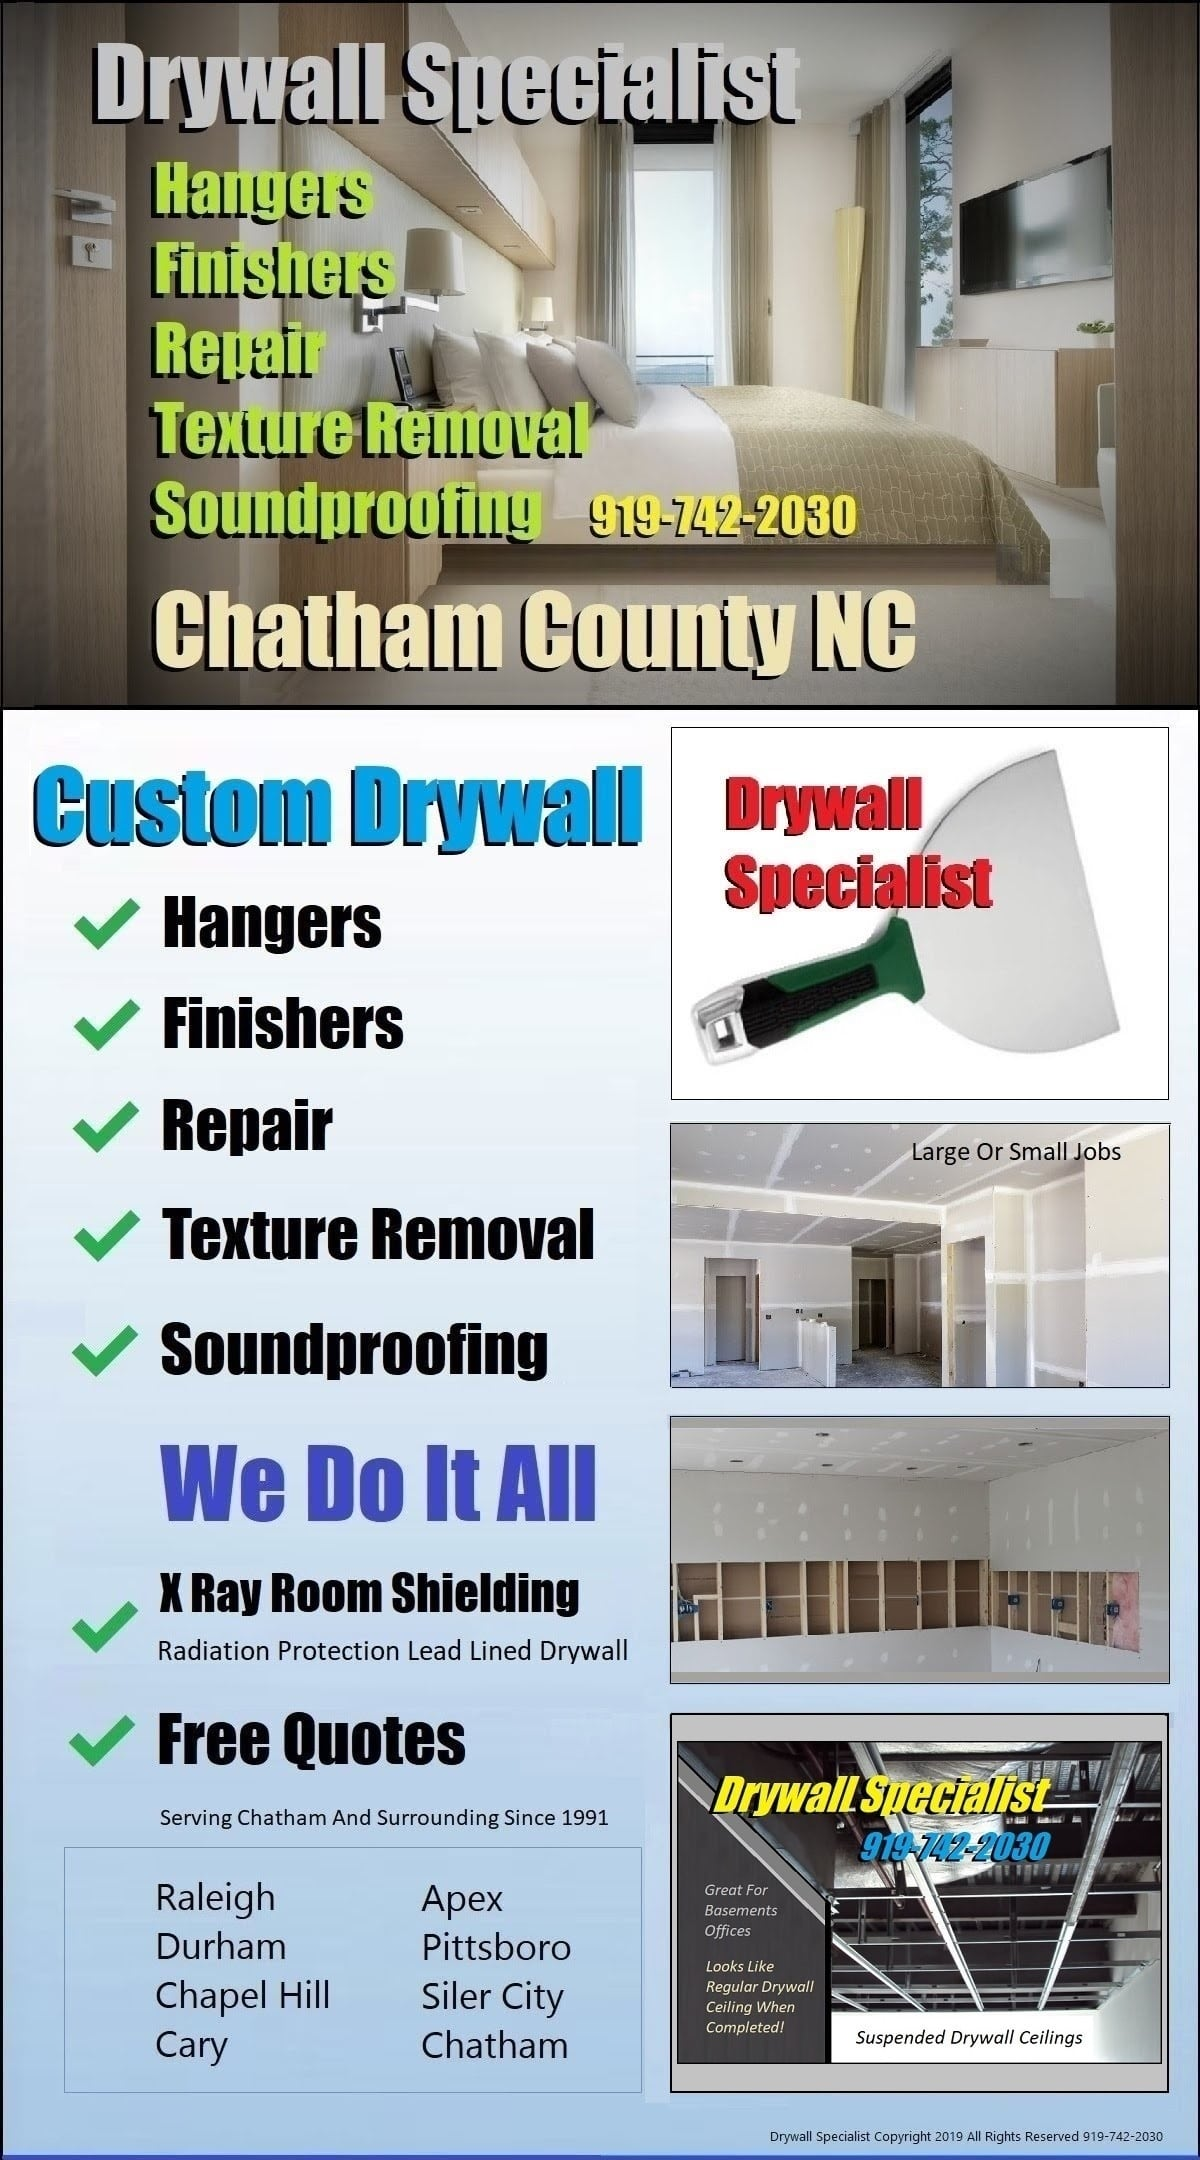 Nextdoor Do It All Drywall Hanging Finishing Repair PopcornTexture Removal Raleigh Durham RTP Piedmont | North Carolina